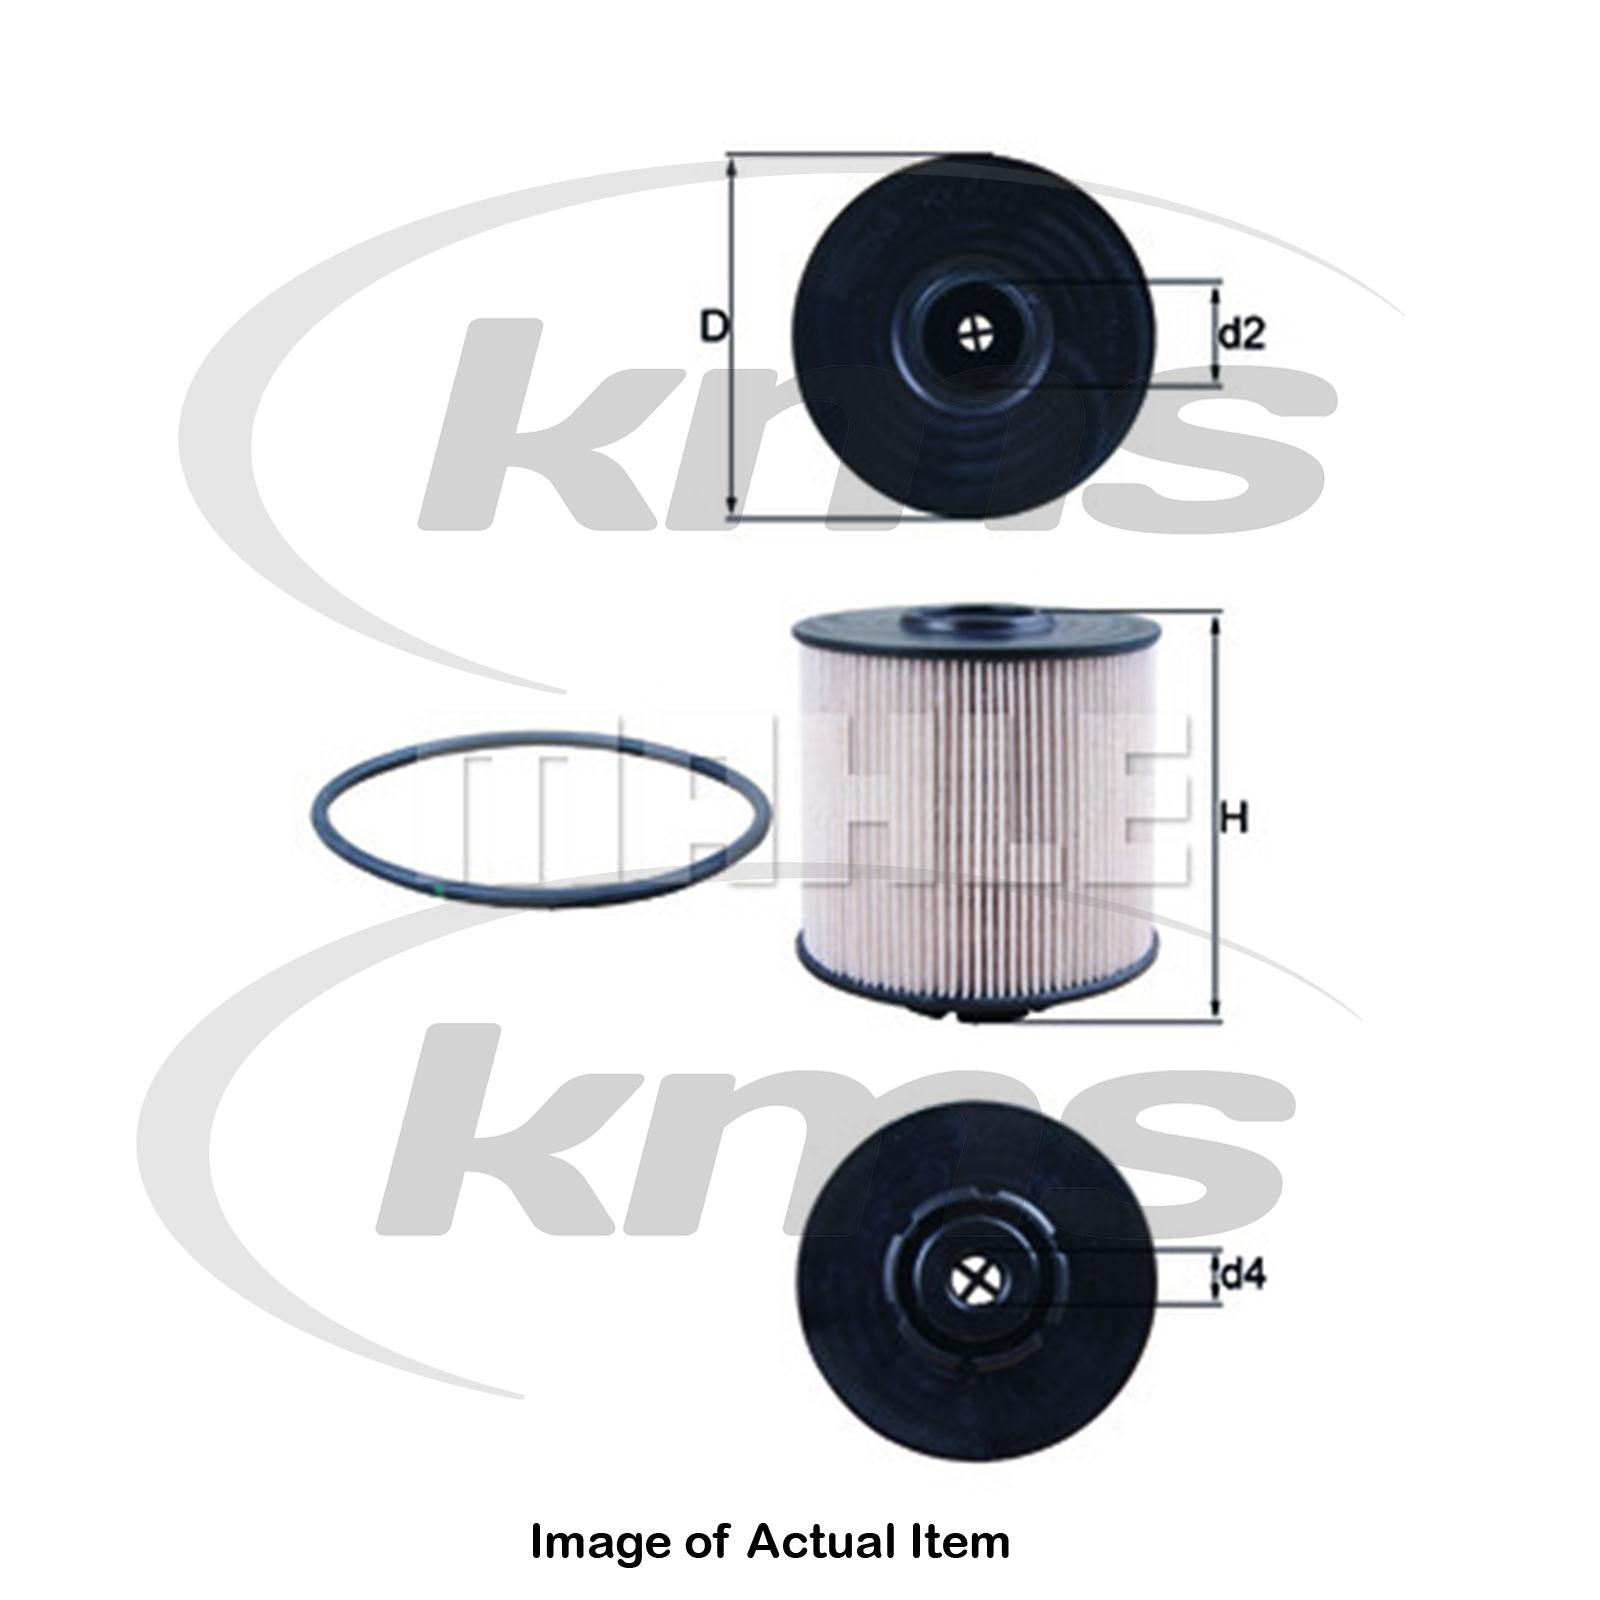 New Genuine Mahle Fuel Filter Kx 67 2d Top German Quality C230 Sentinel